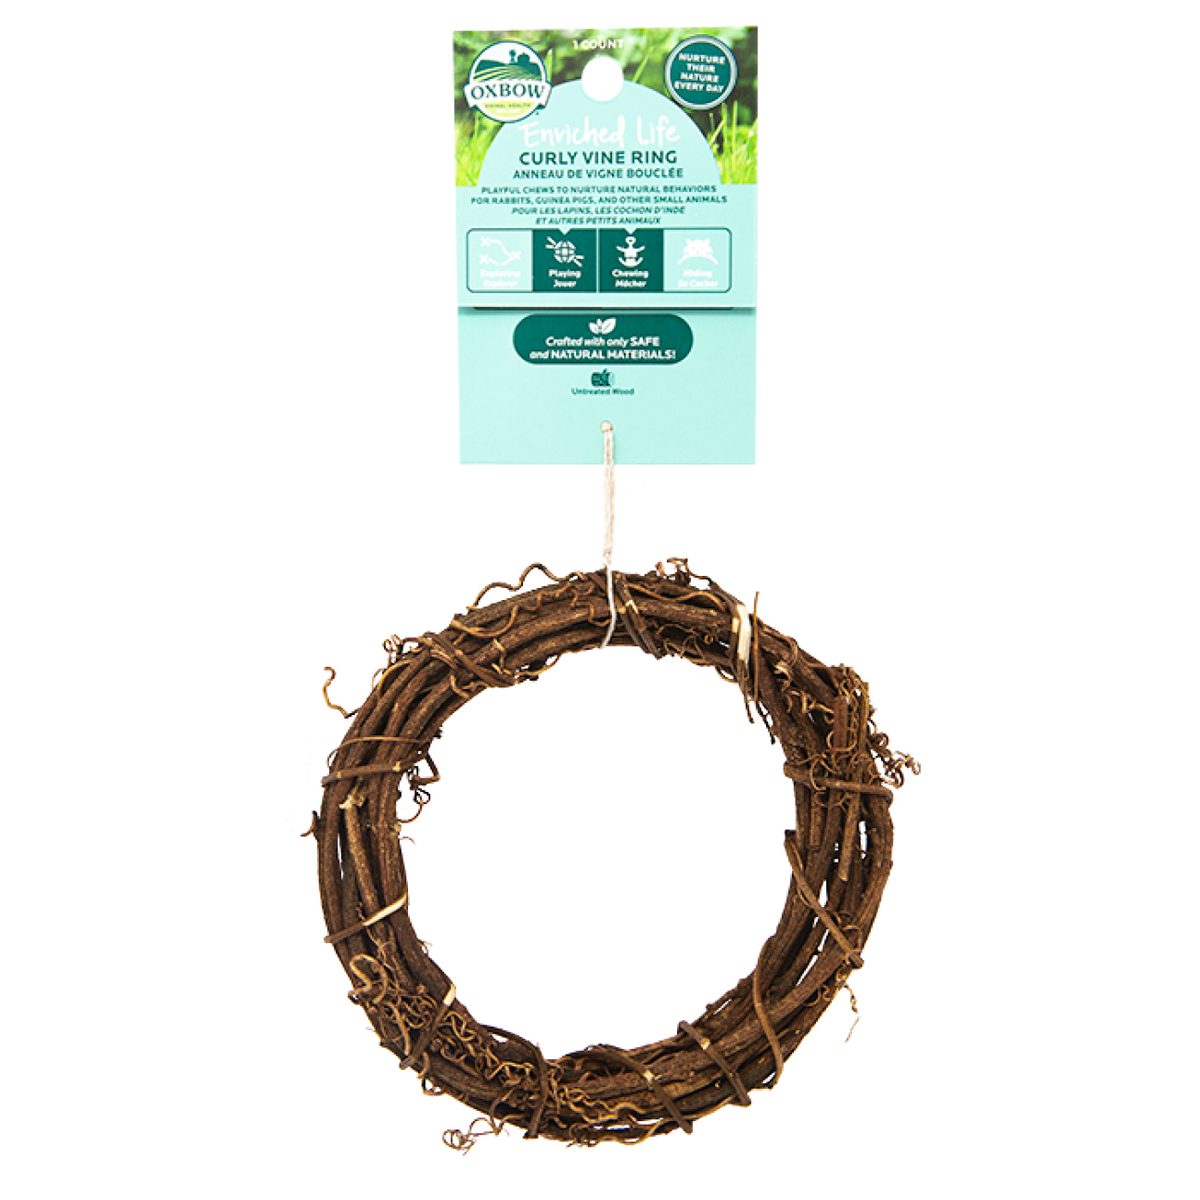 Oxbow Enriched Life - Curly Vine Ring Natural Chew